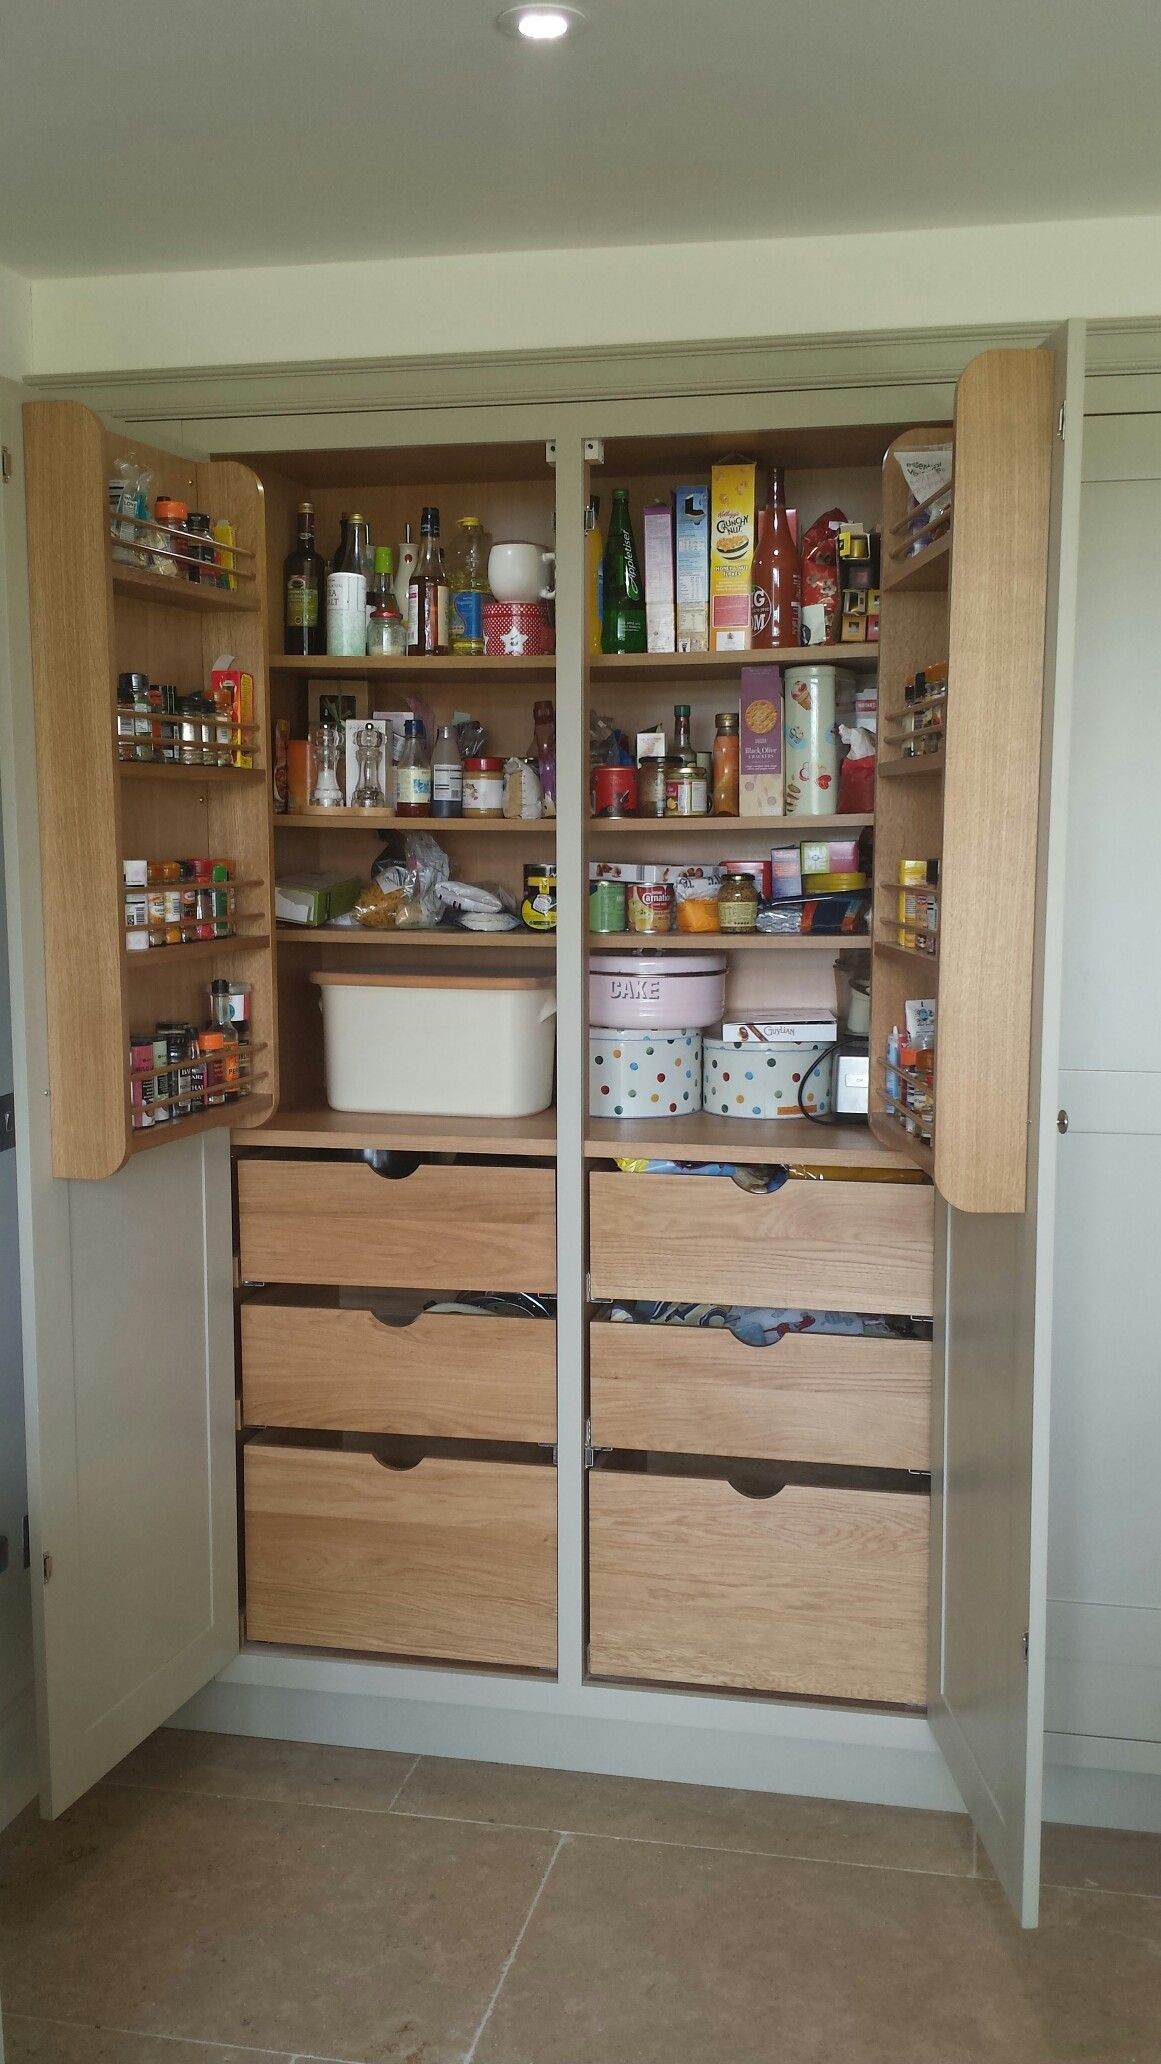 Kitchen Larder Cabinet By Welbourn Furniture Ltd Kitchen Larder Furniture Cabinet